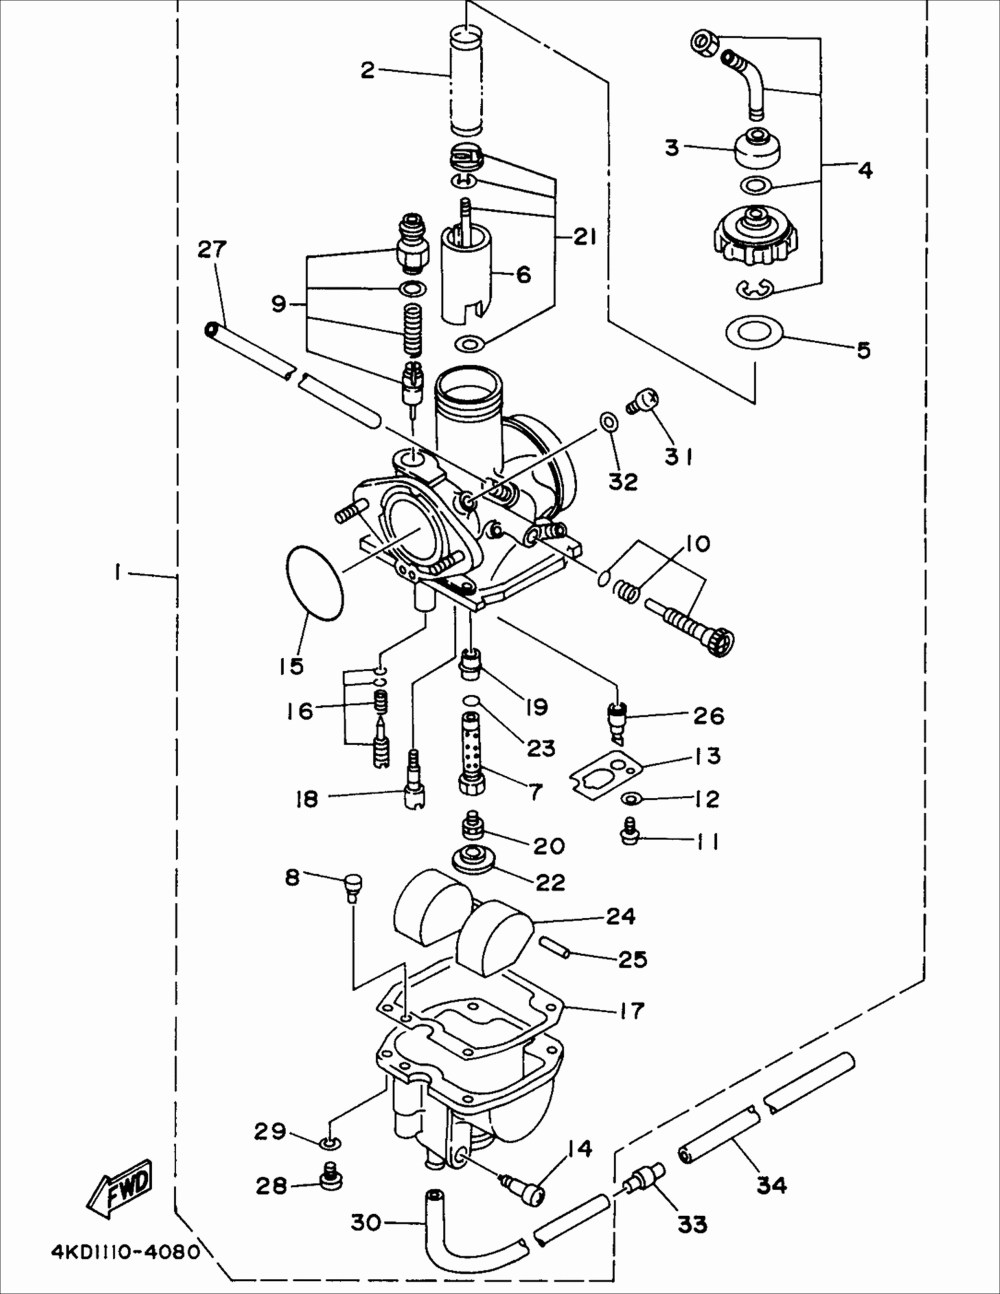 medium resolution of wiring diagram for 2002 mitsubishi montero wiring diagram megadownload image 2001 mitsubishi montero sport engine diagram